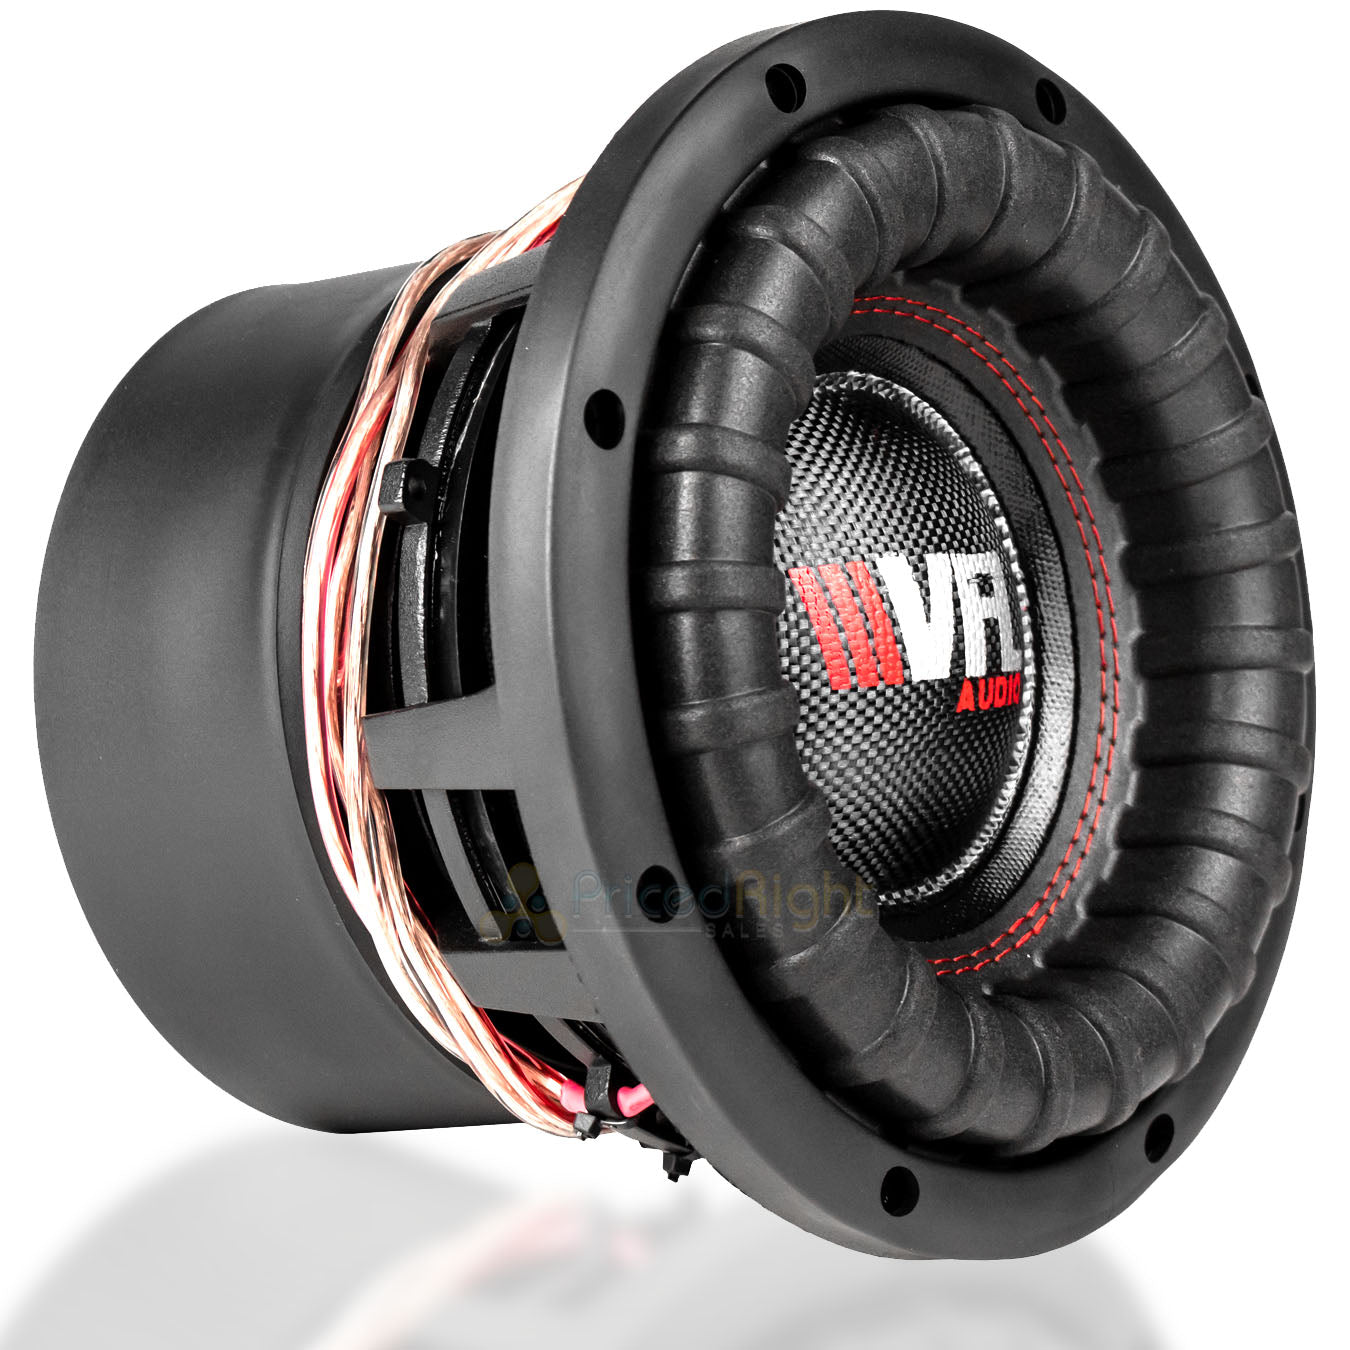 "2 Pack American Bass 8"" Competition Subwoofers Dual 4 Ohm 1200W Max Sub VFL-8D4"